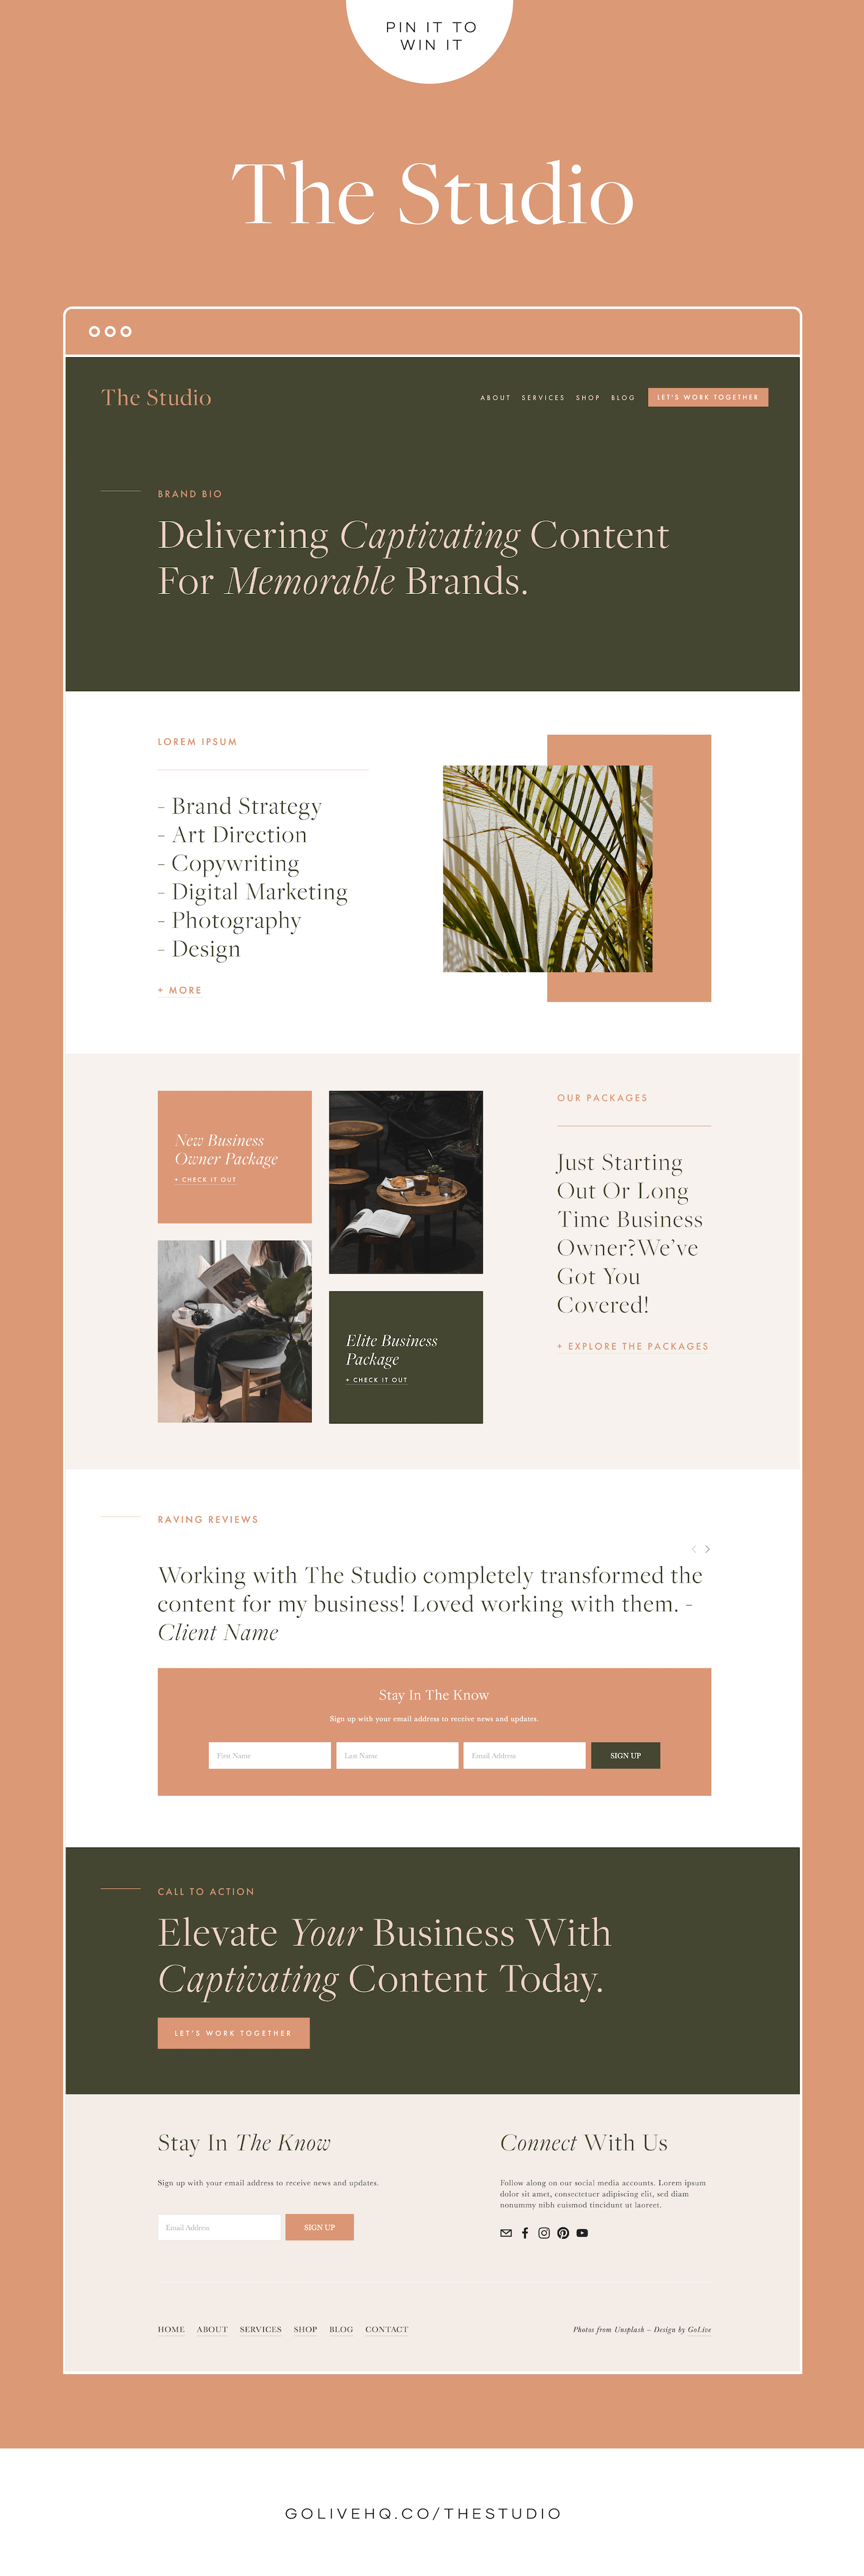 Modern, Minimal Squarespace Website Template For Small Business Owners